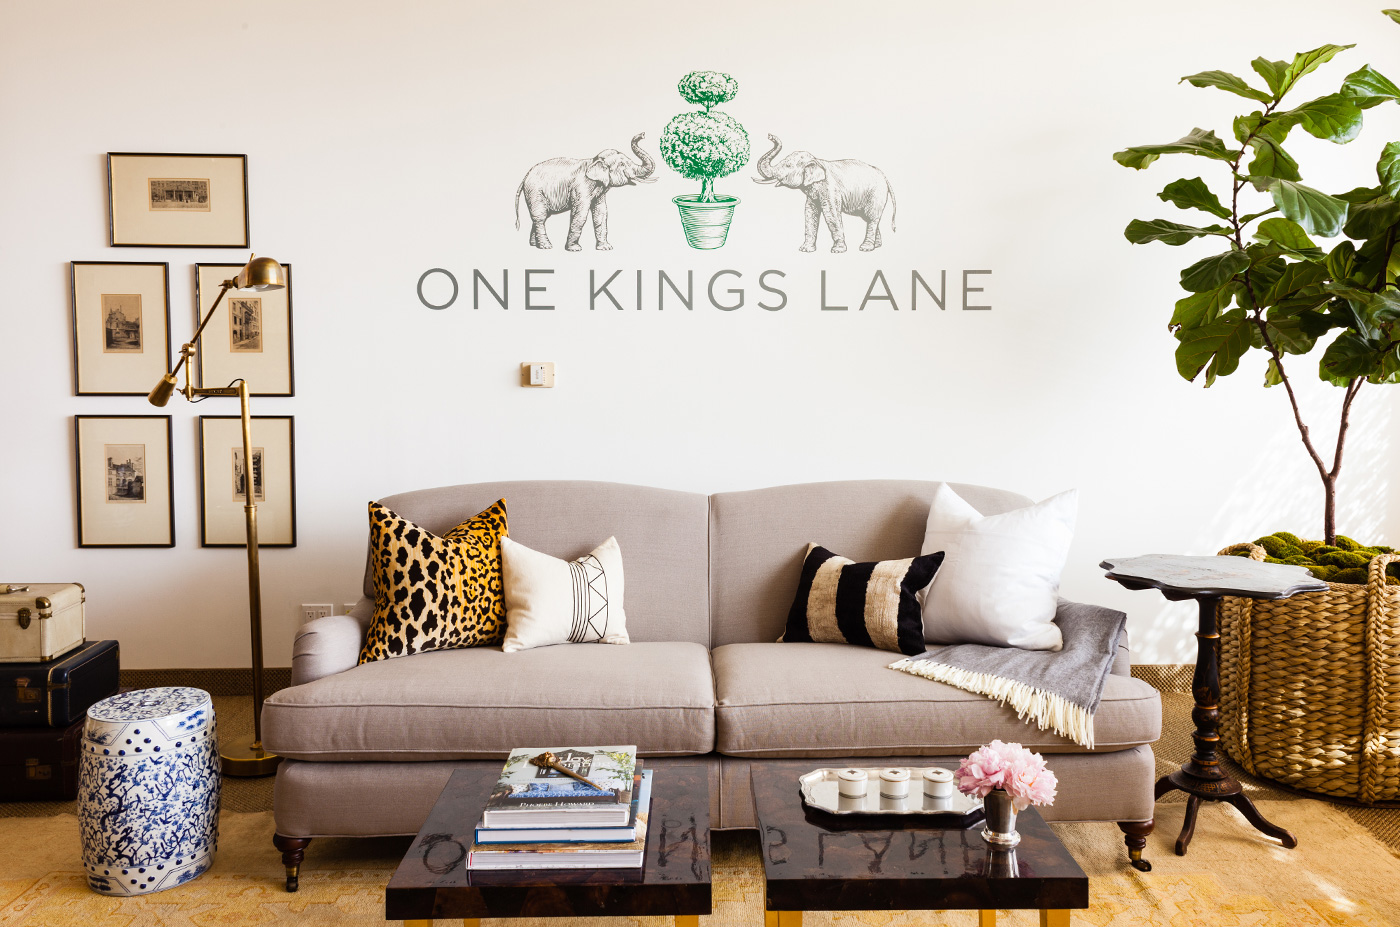 Use active One Kings Lane 355movie.ml Coupon Codes and free One Kings Lane deals December to get the biggest discount. Anycodes offer free coupons for over 15,+ active stores by 355movie.ml